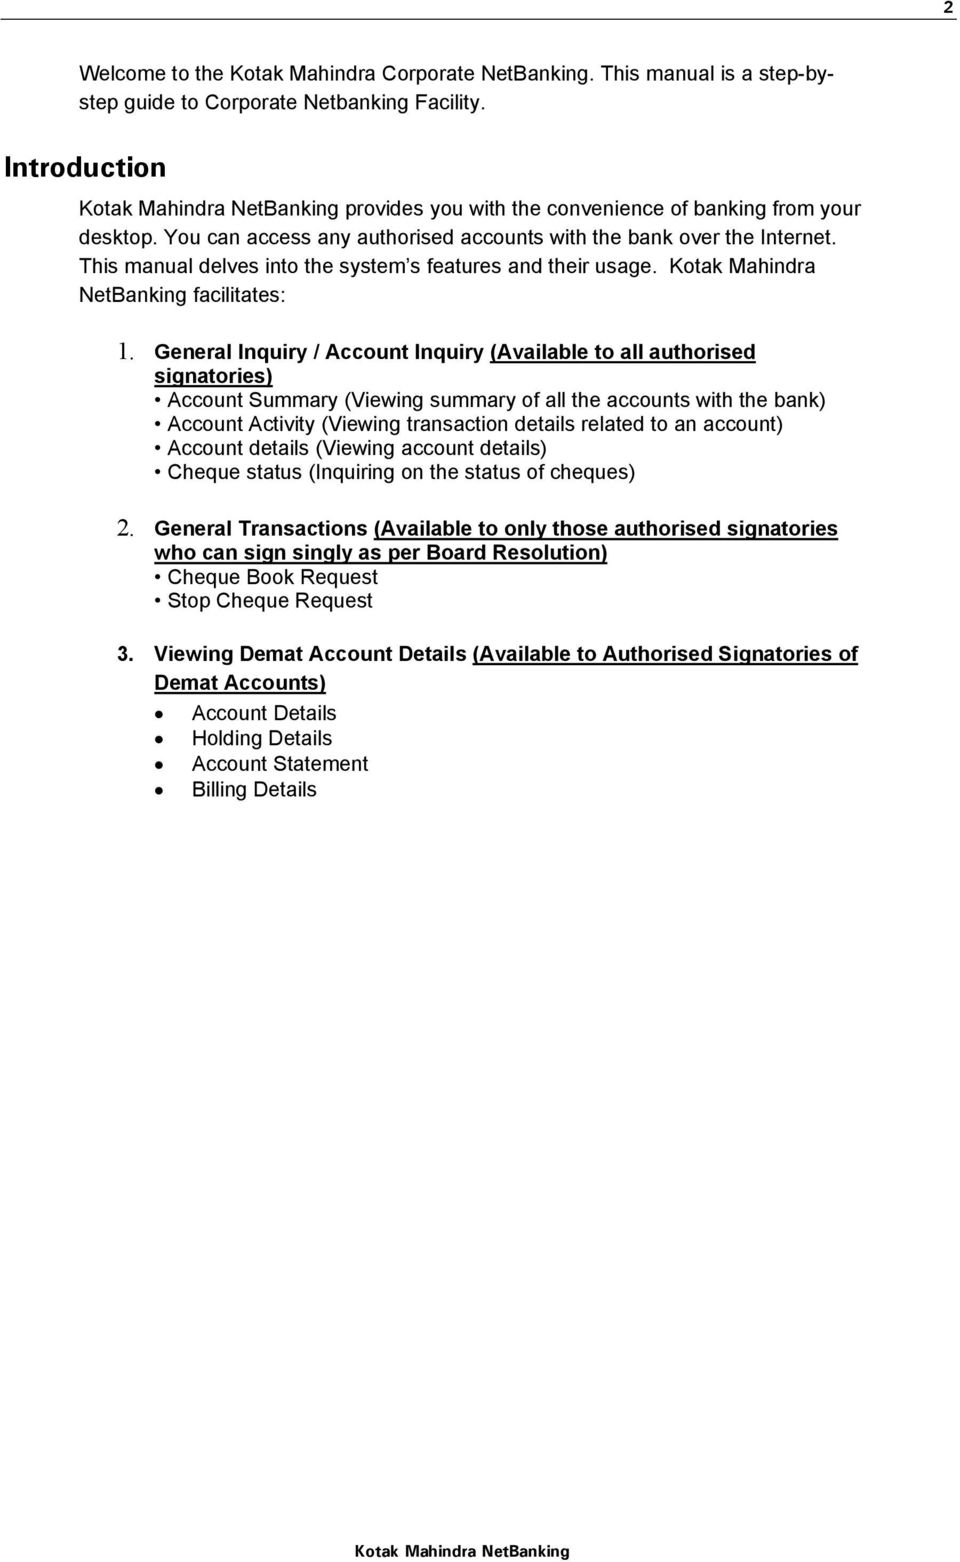 General Inquiry / Account Inquiry (Available to all authorised signatories) Account Summary (Viewing summary of all the accounts with the bank) Account Activity (Viewing transaction details related